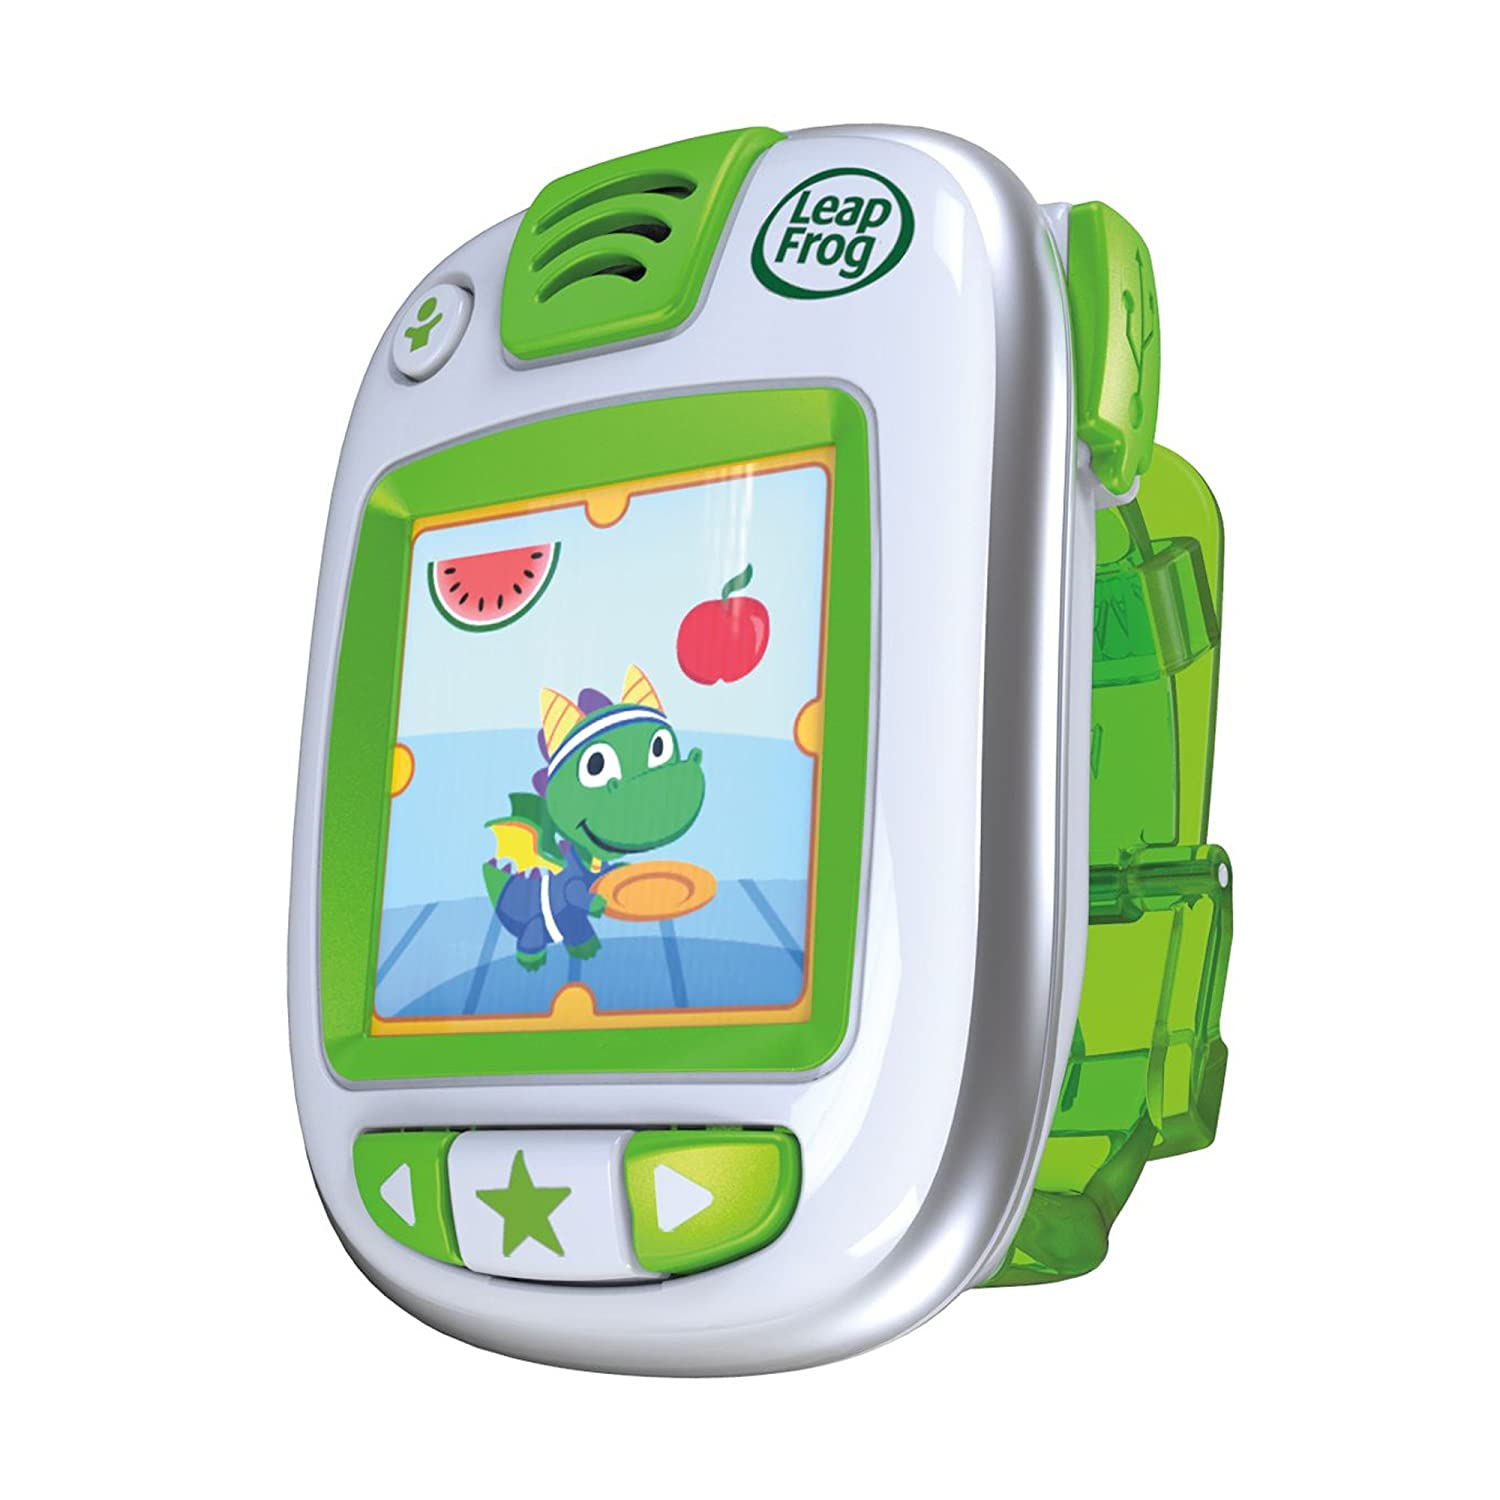 LeapFrog LeapBand Activity Tracker Green Amazon Toys & Games